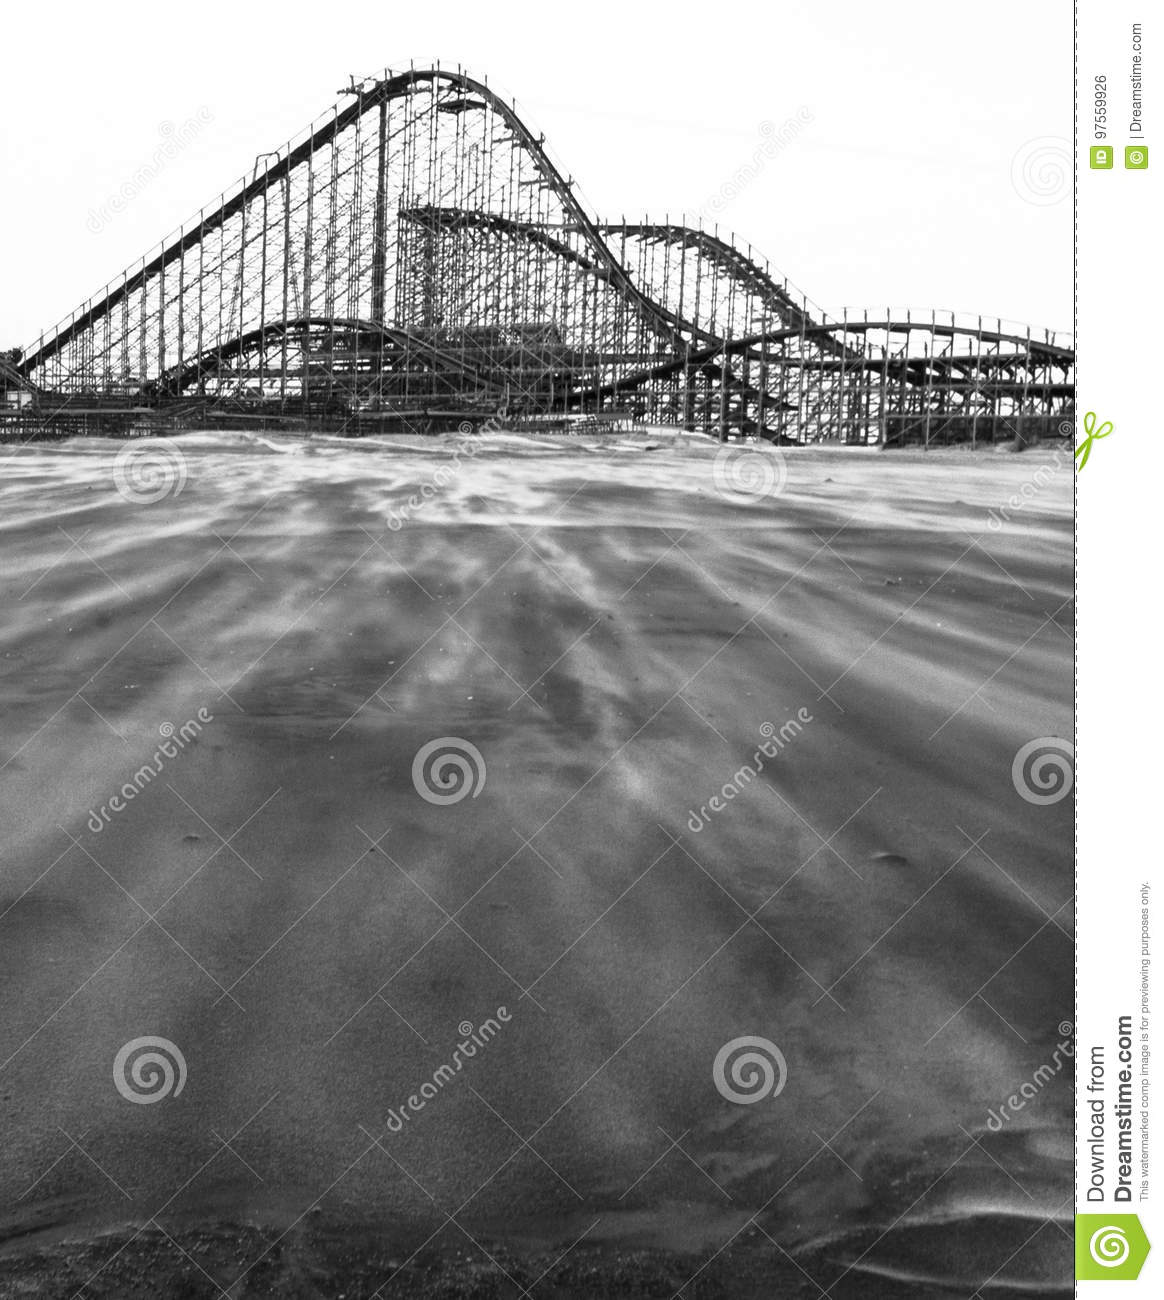 Wooden Rollercoaster at the Beach